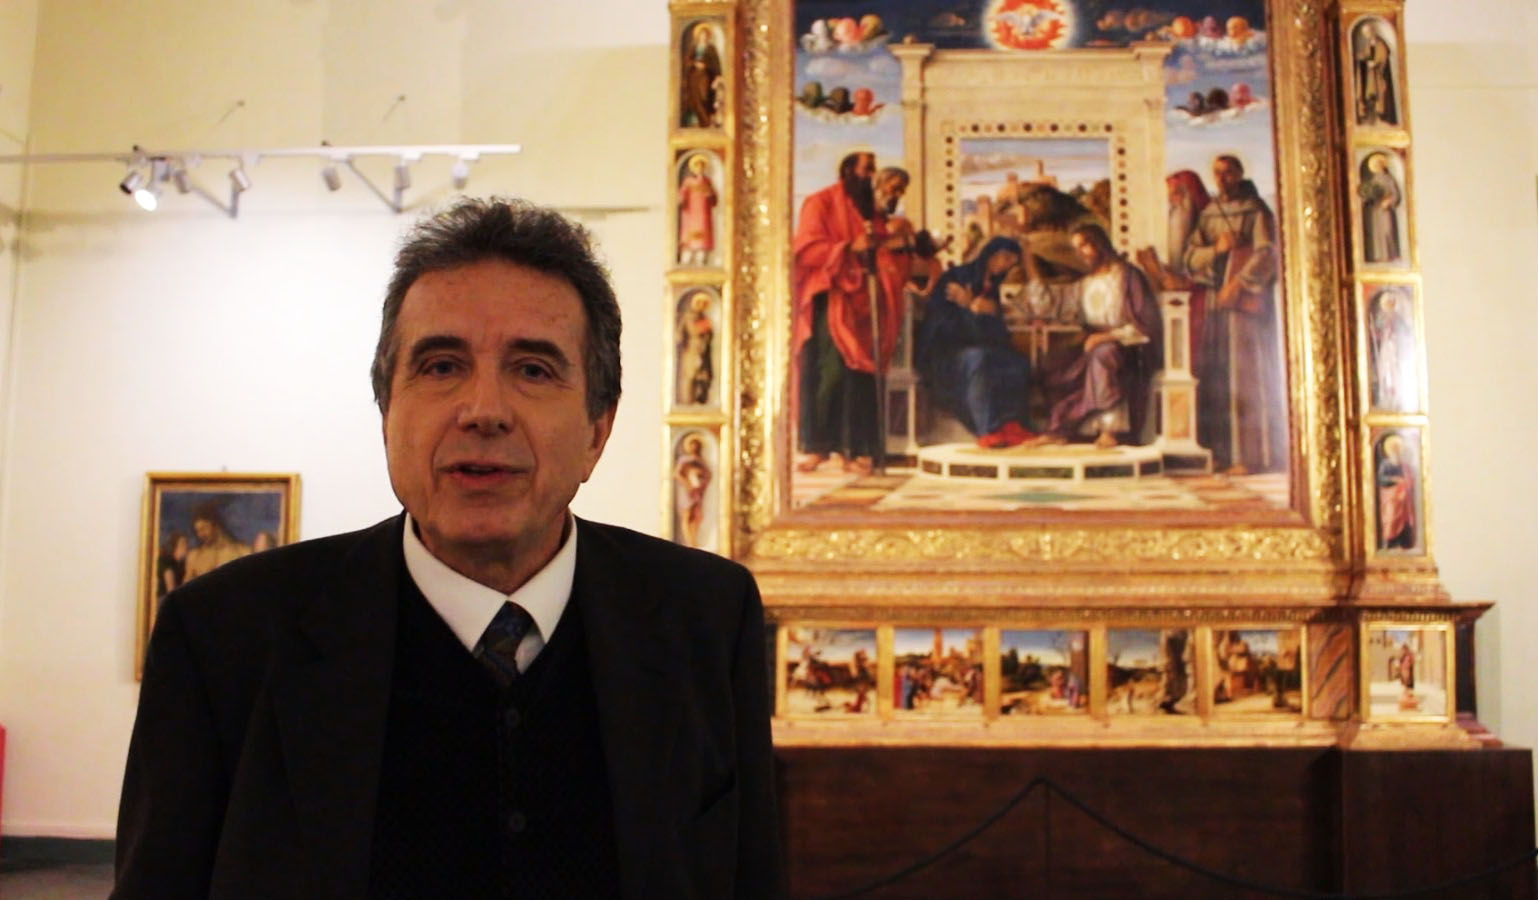 #laculturanonsiferma con le video conferenze di Pesaro Musei